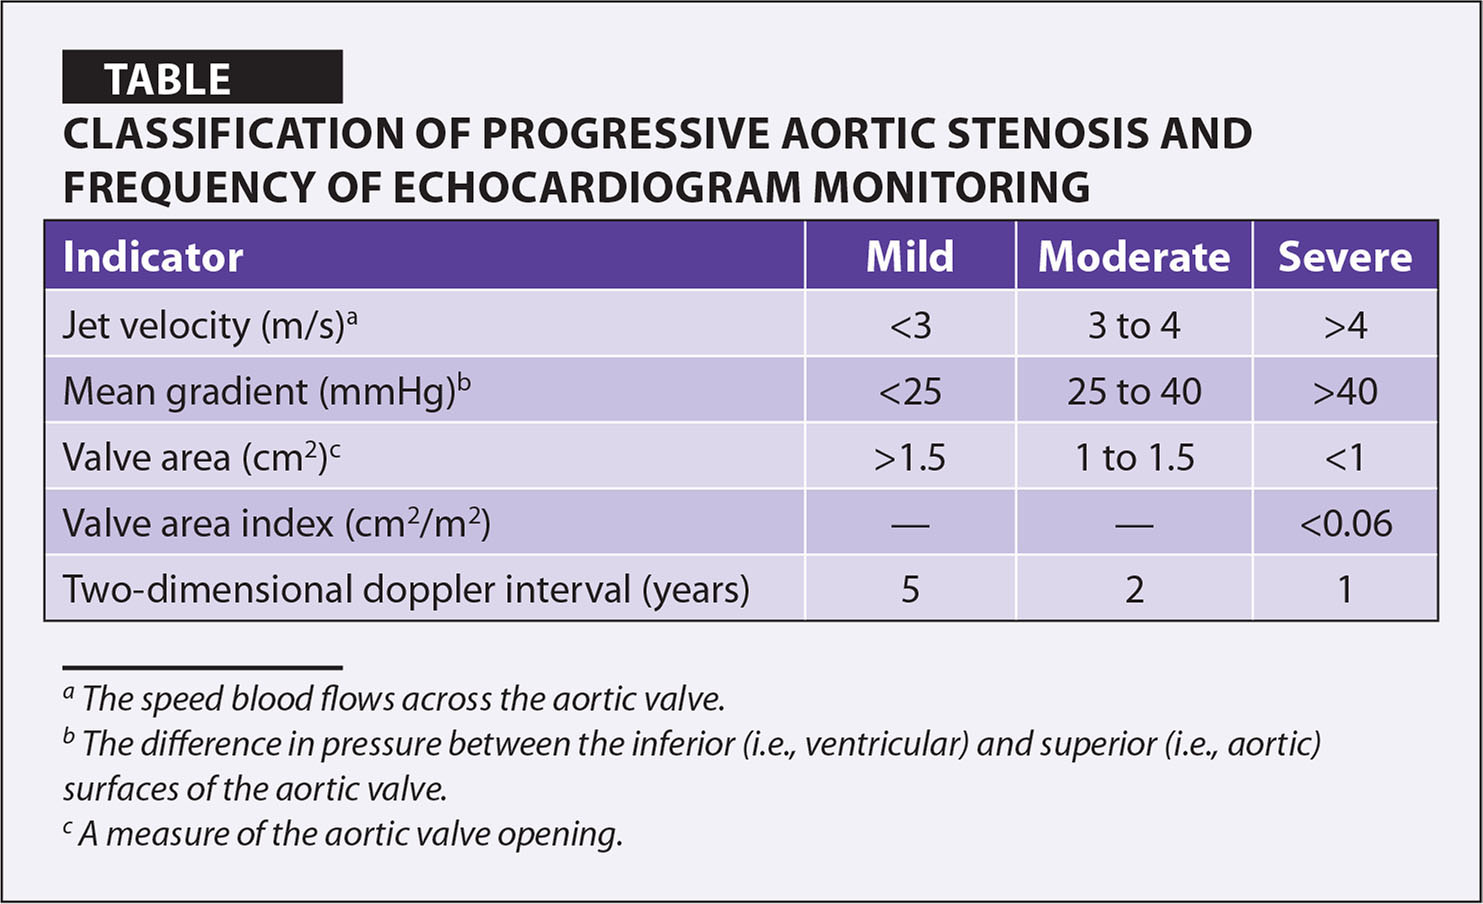 Classification of Progressive Aortic Stenosis and Frequency of Echocardiogram Monitoring